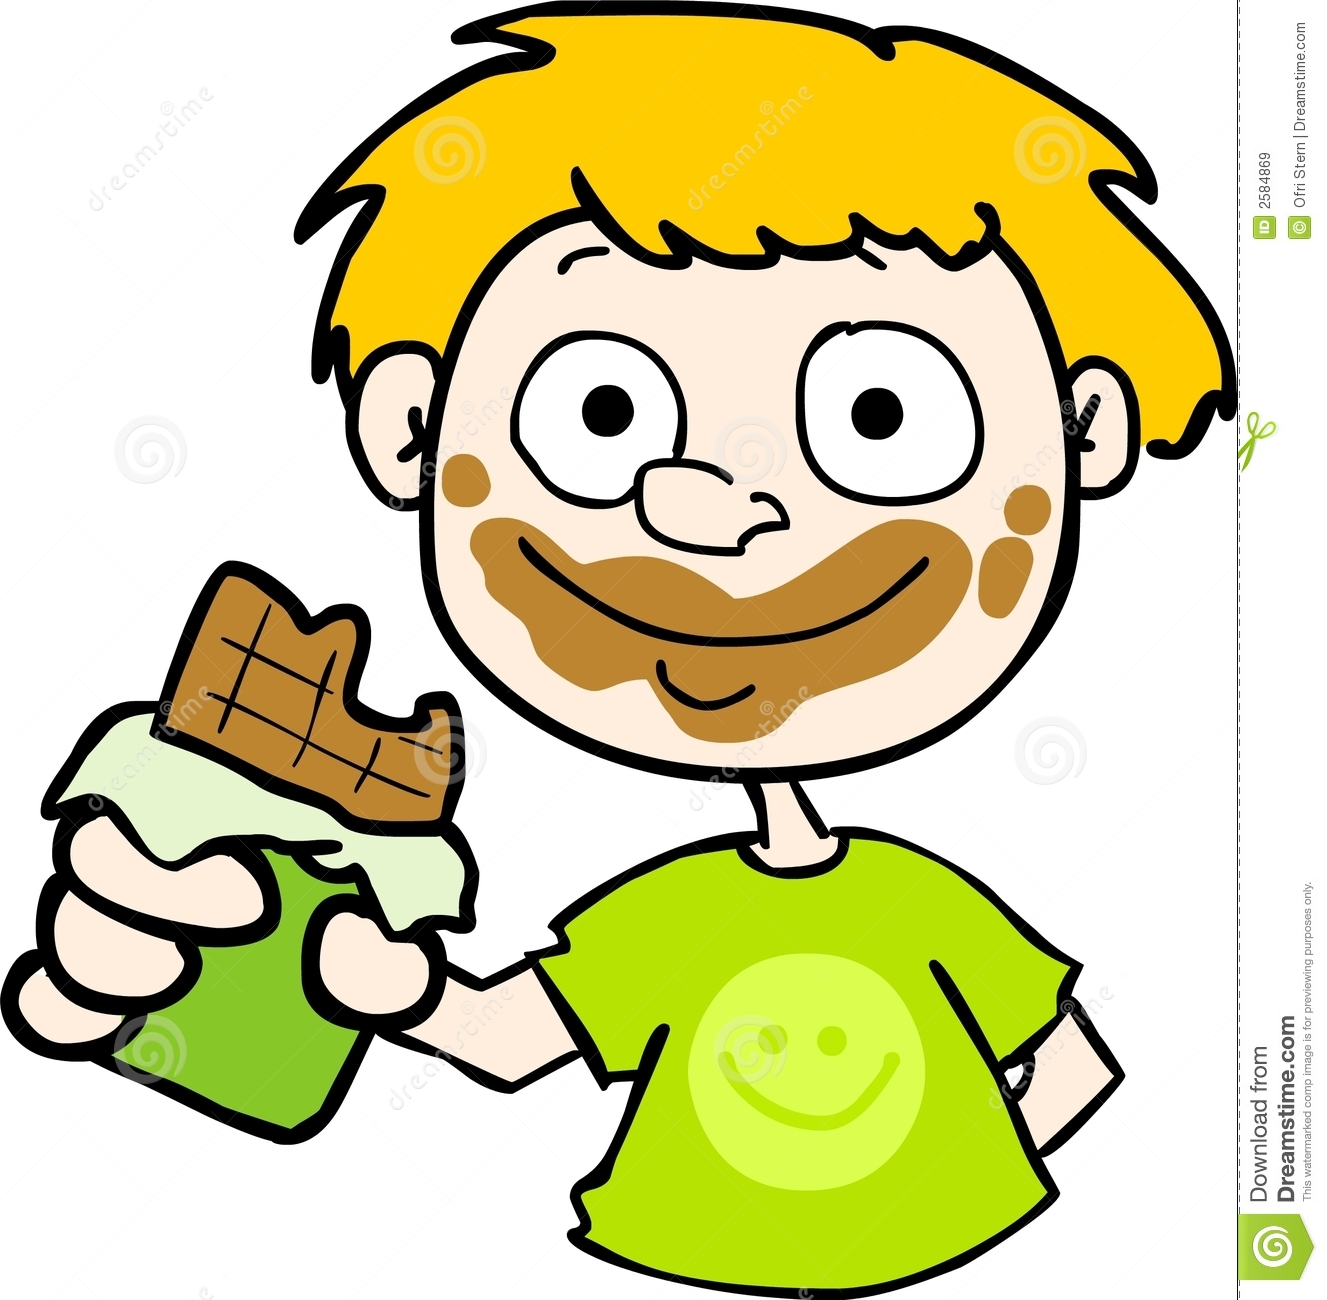 Messy Chocolate Face Clipart.